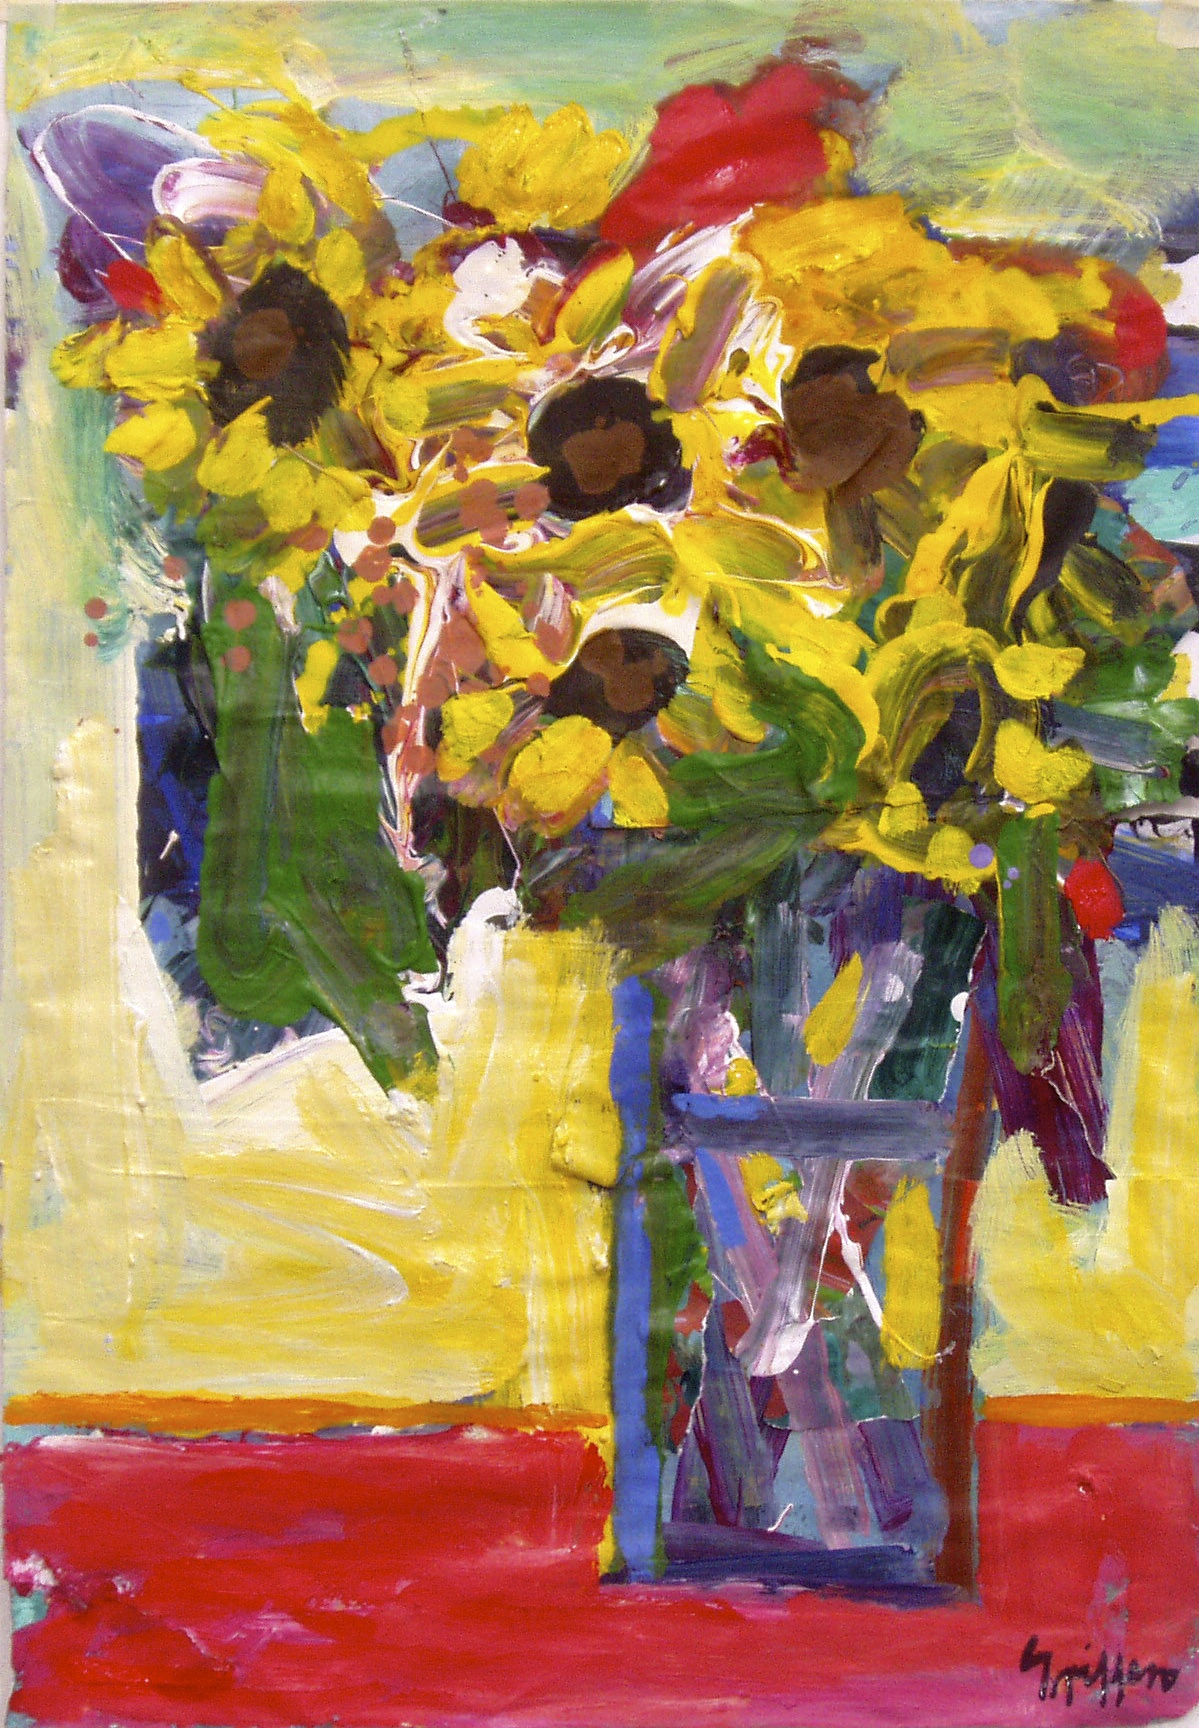 Sunflowers 1 2007 acrylic on paper 66x46cm